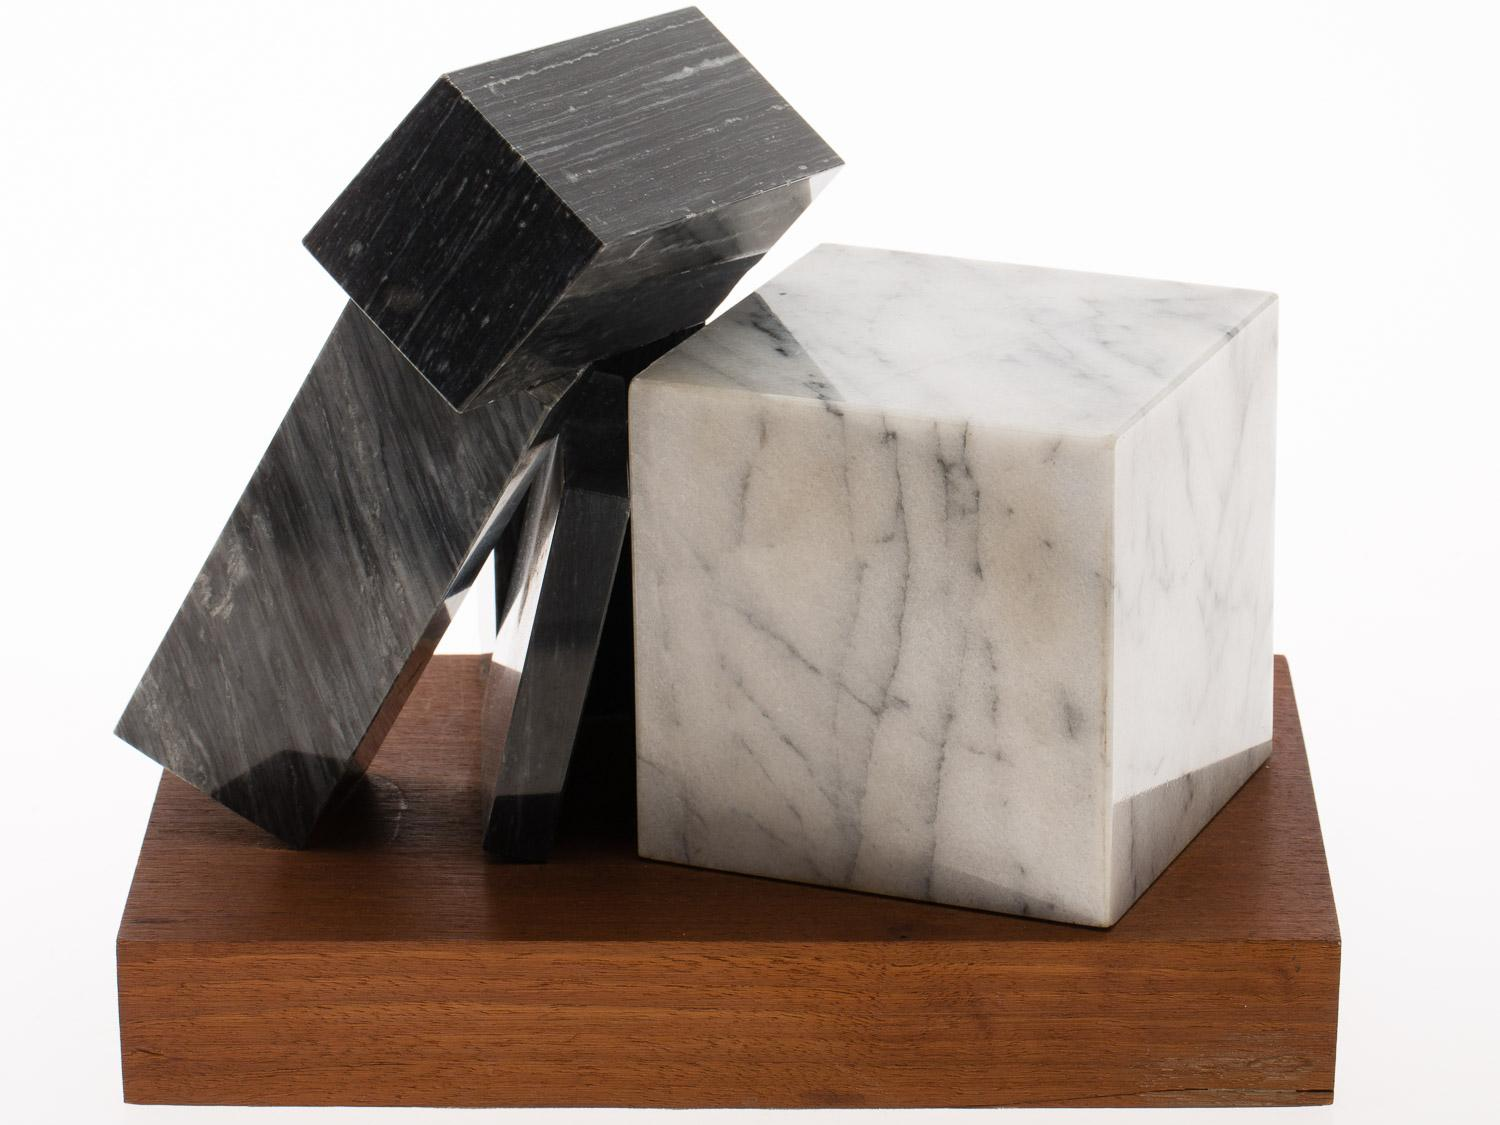 Philip Pavia (NY, 1912-2005), Untilted, Marble Sculpture